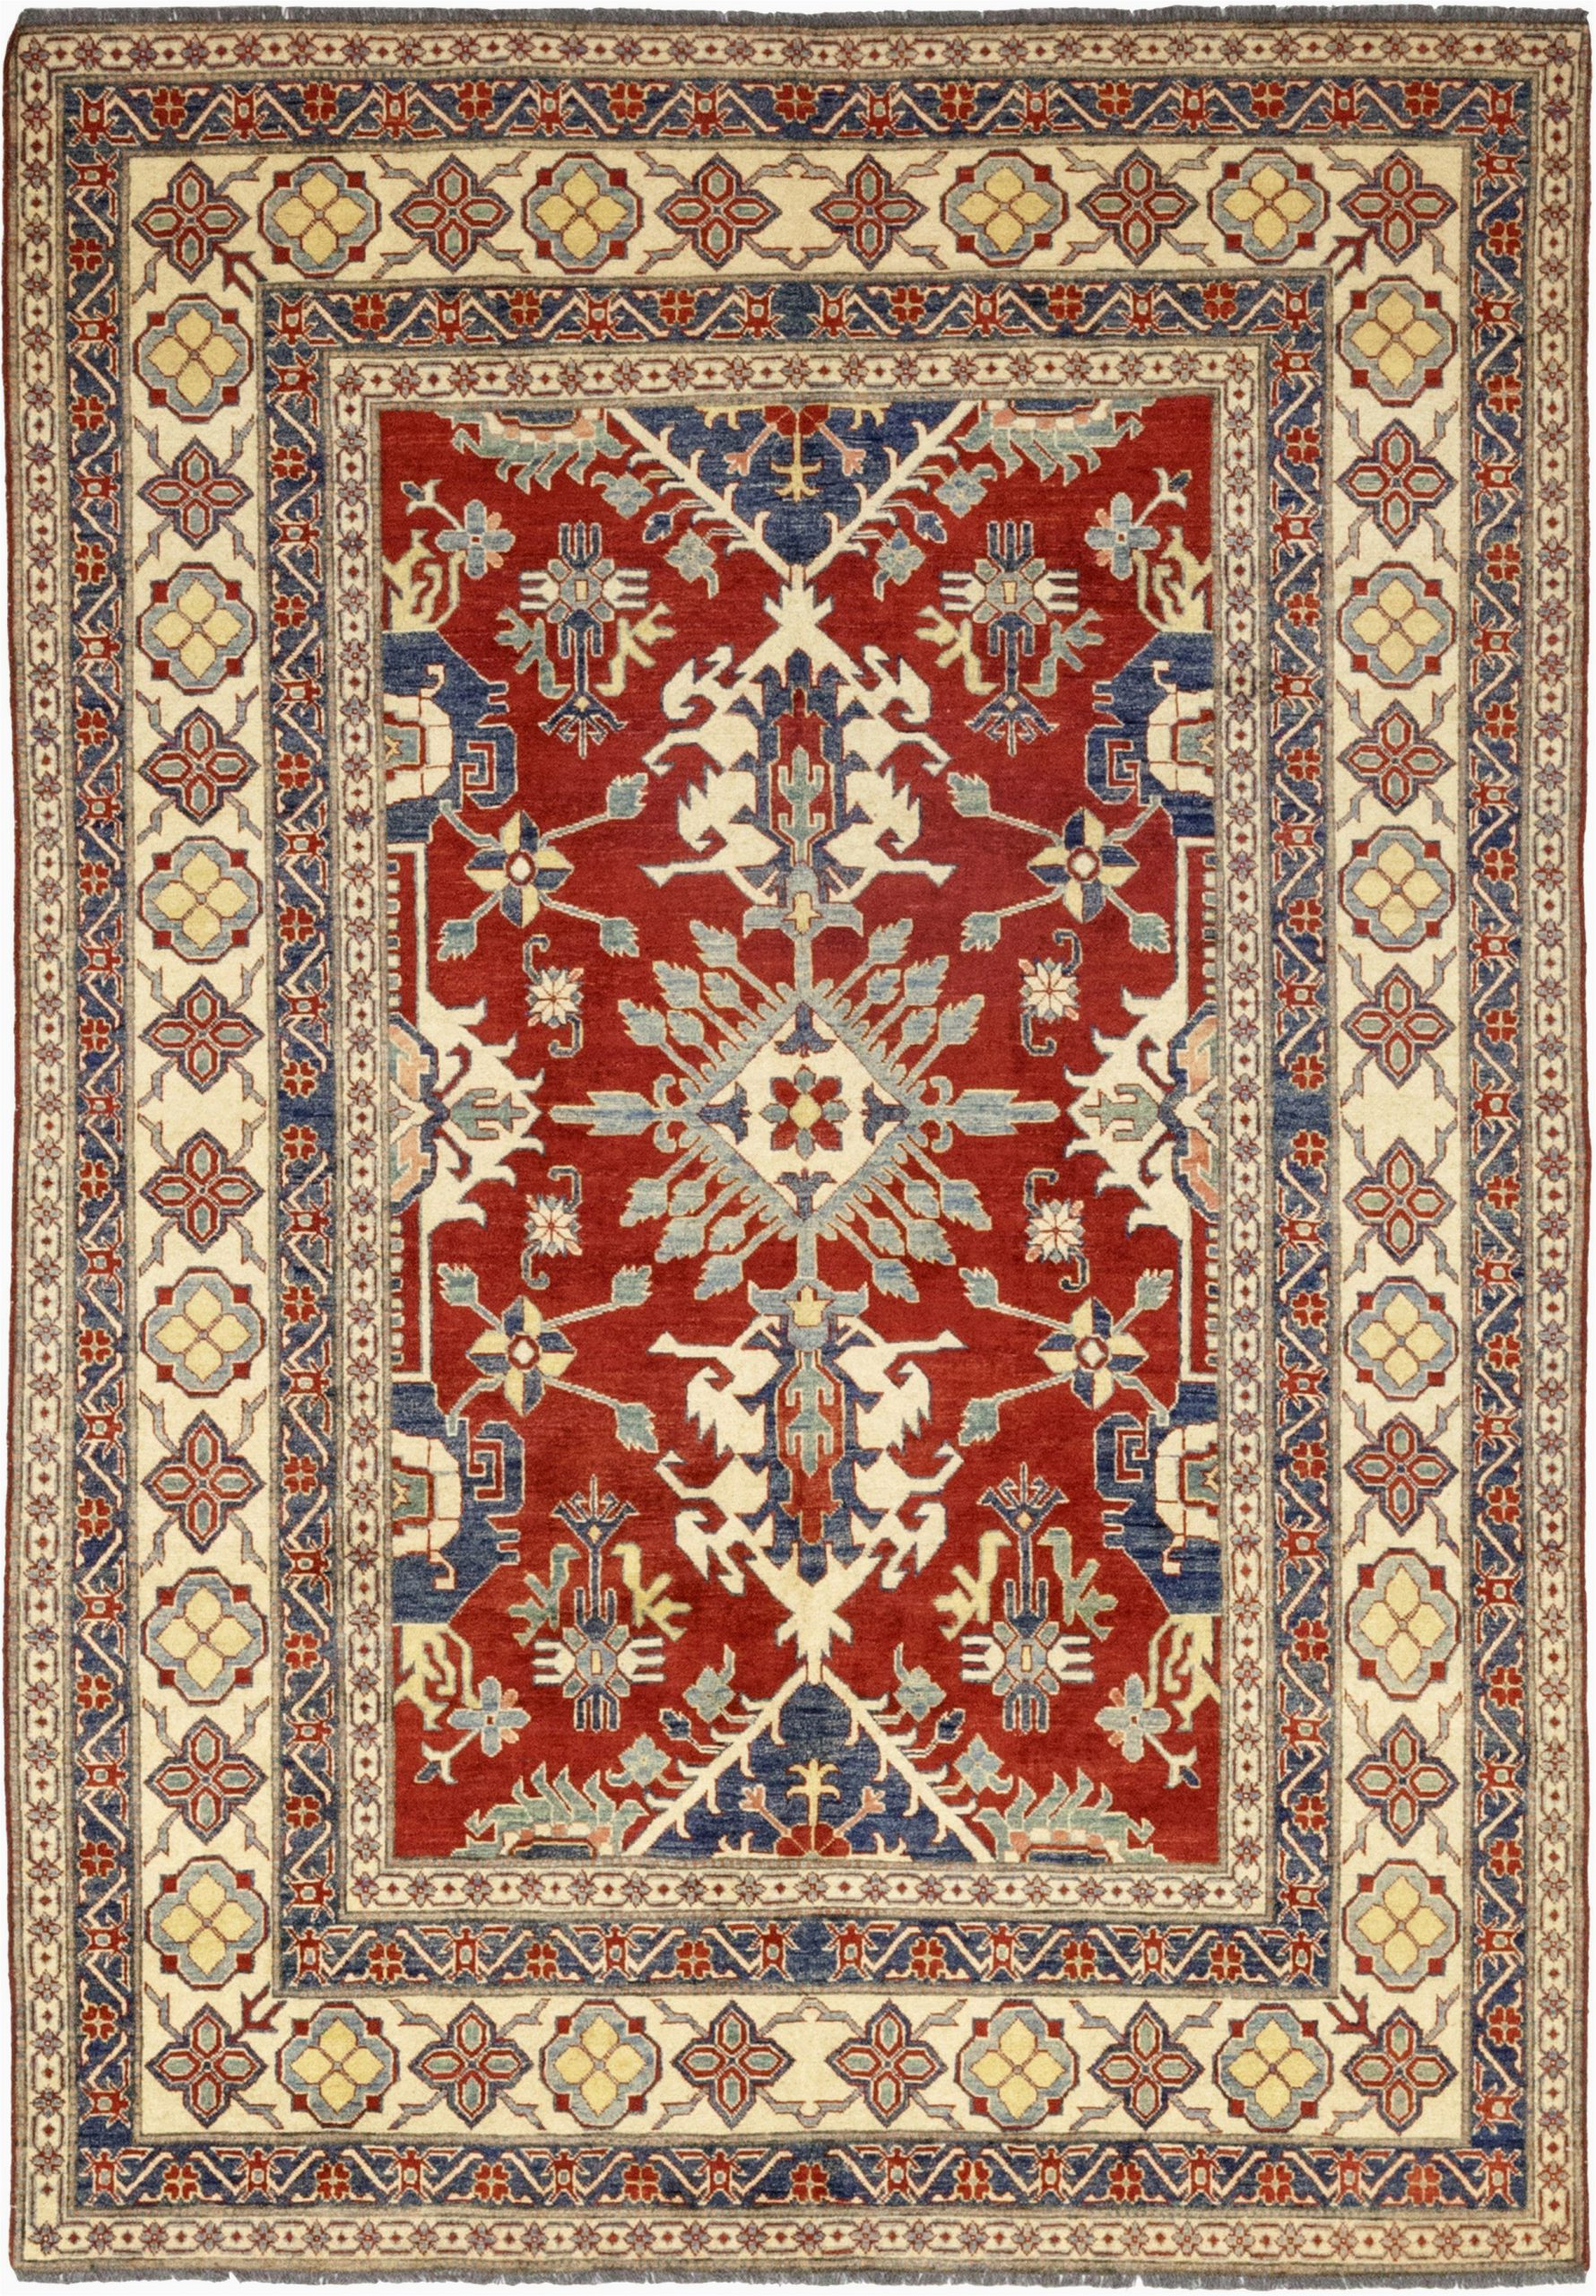 Lowes area Rugs On Clearance ✓ Lowes area Rugs Clearance – Modern Rugs Popular Design